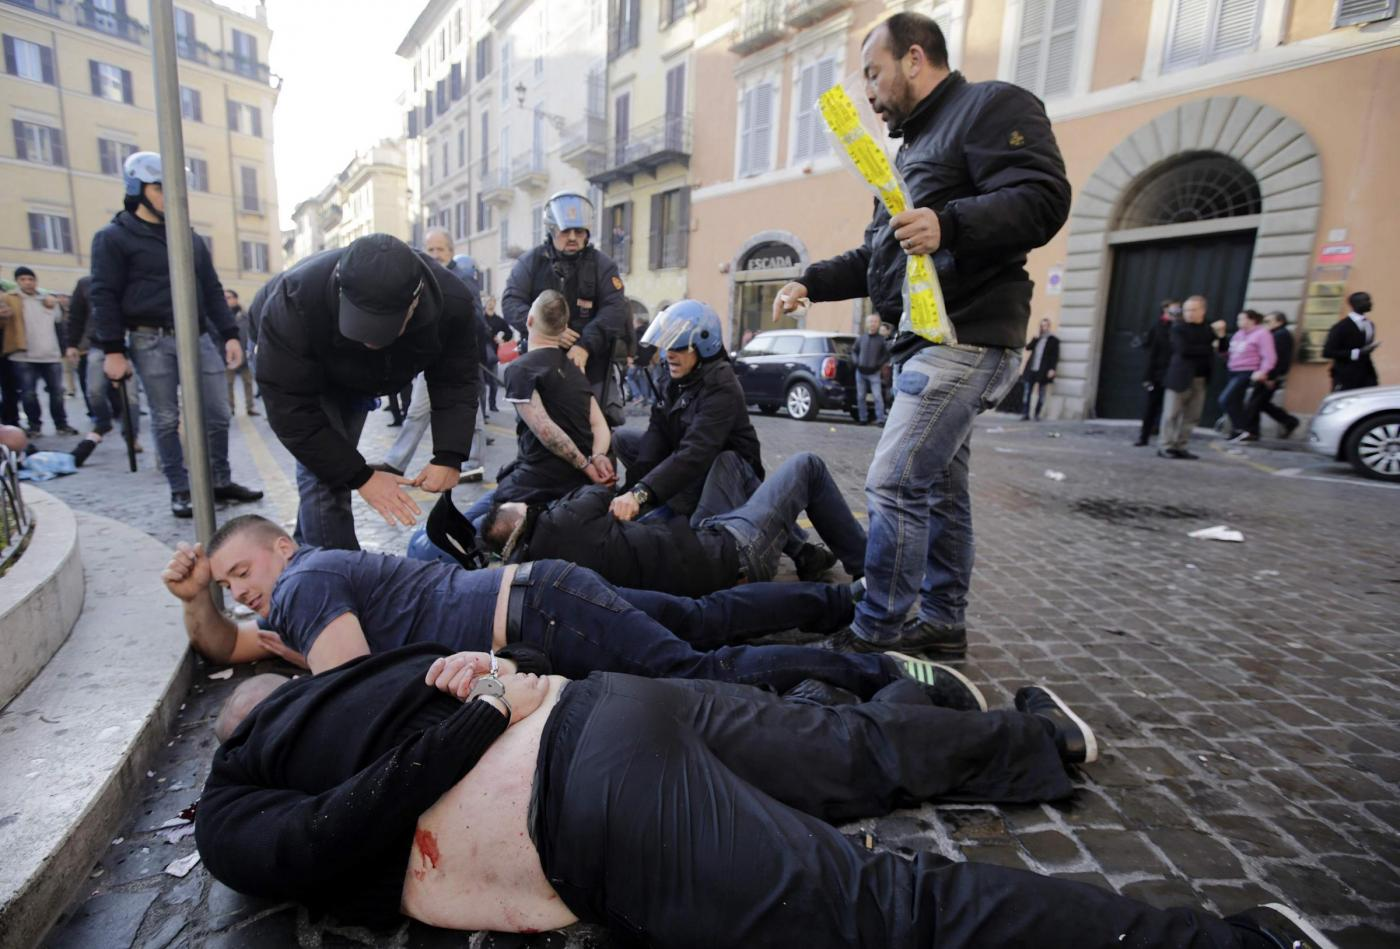 Feyenoord fans lie facedown on the street after being detained during clashes that broke out at the Spanish Steps prior to the start of the Europa League soccer match between Roma and Feyenoord in Rome